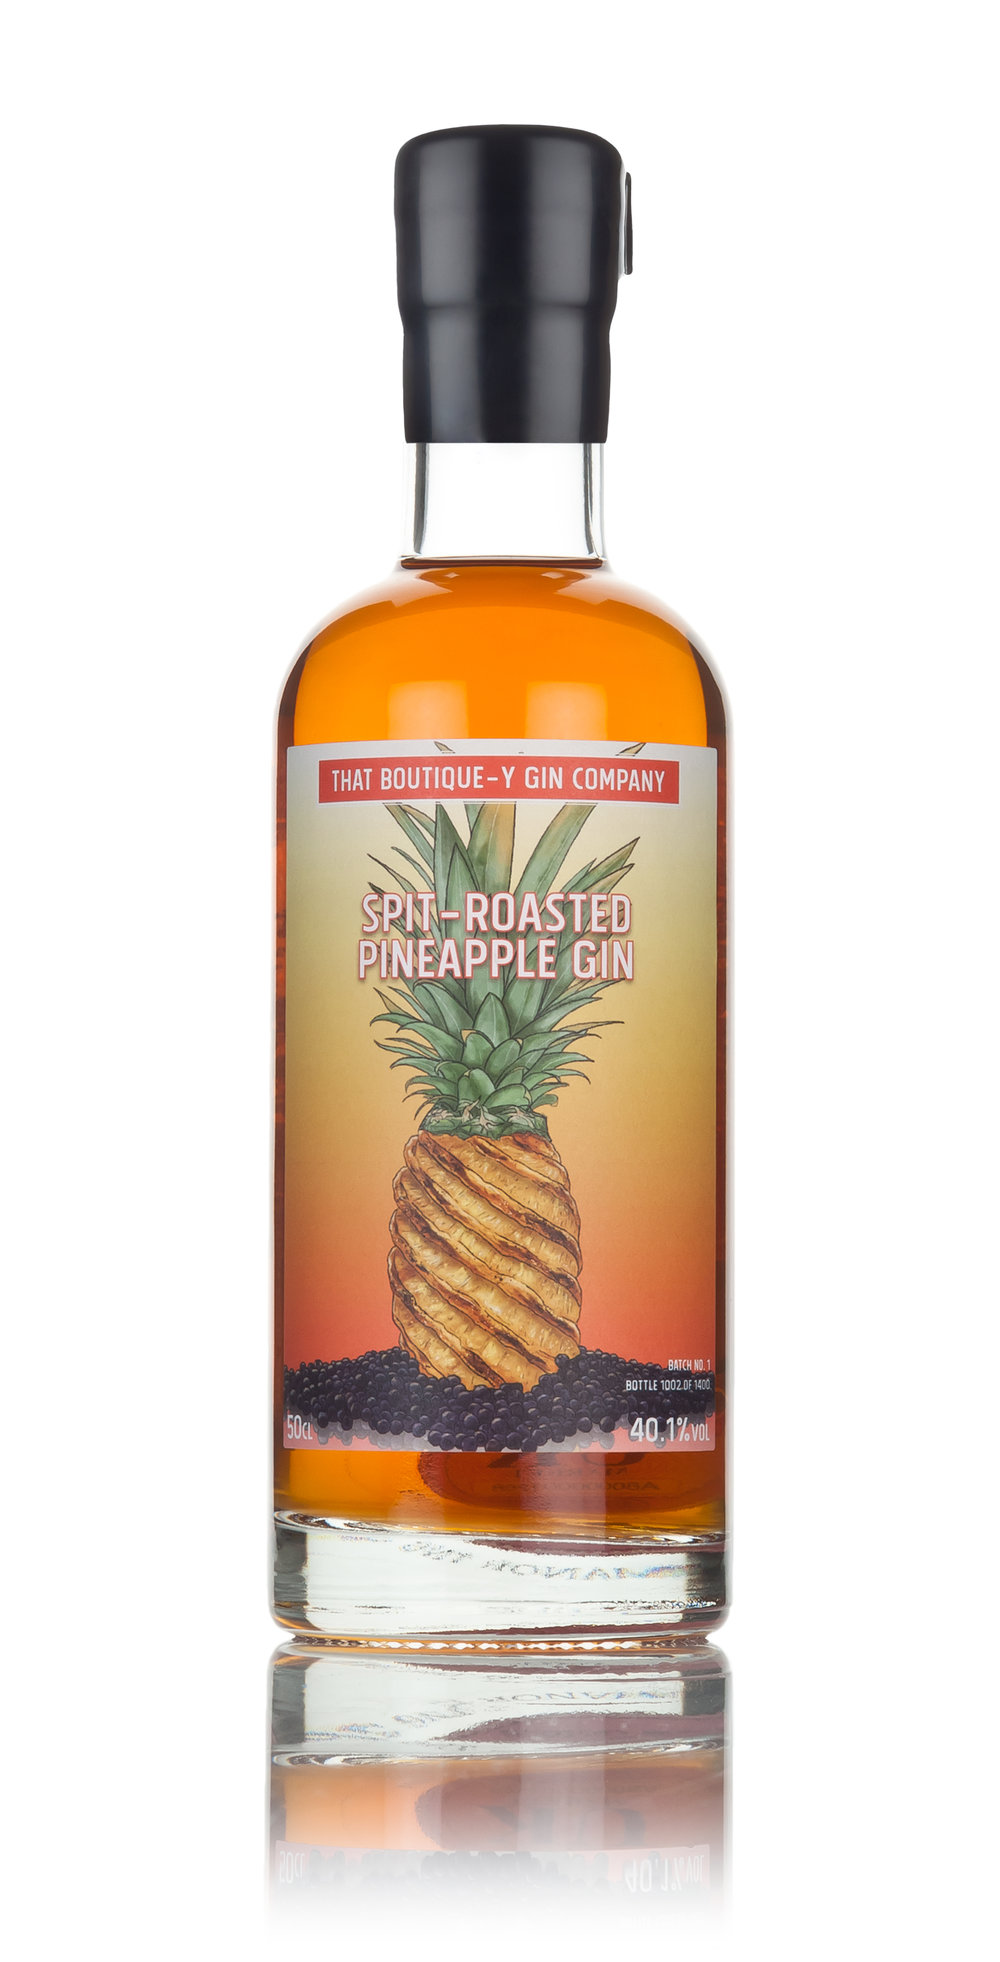 Spit-Roasted Pineapple Gin - Batch 1 (That Boutique-y Gin Company).jpg